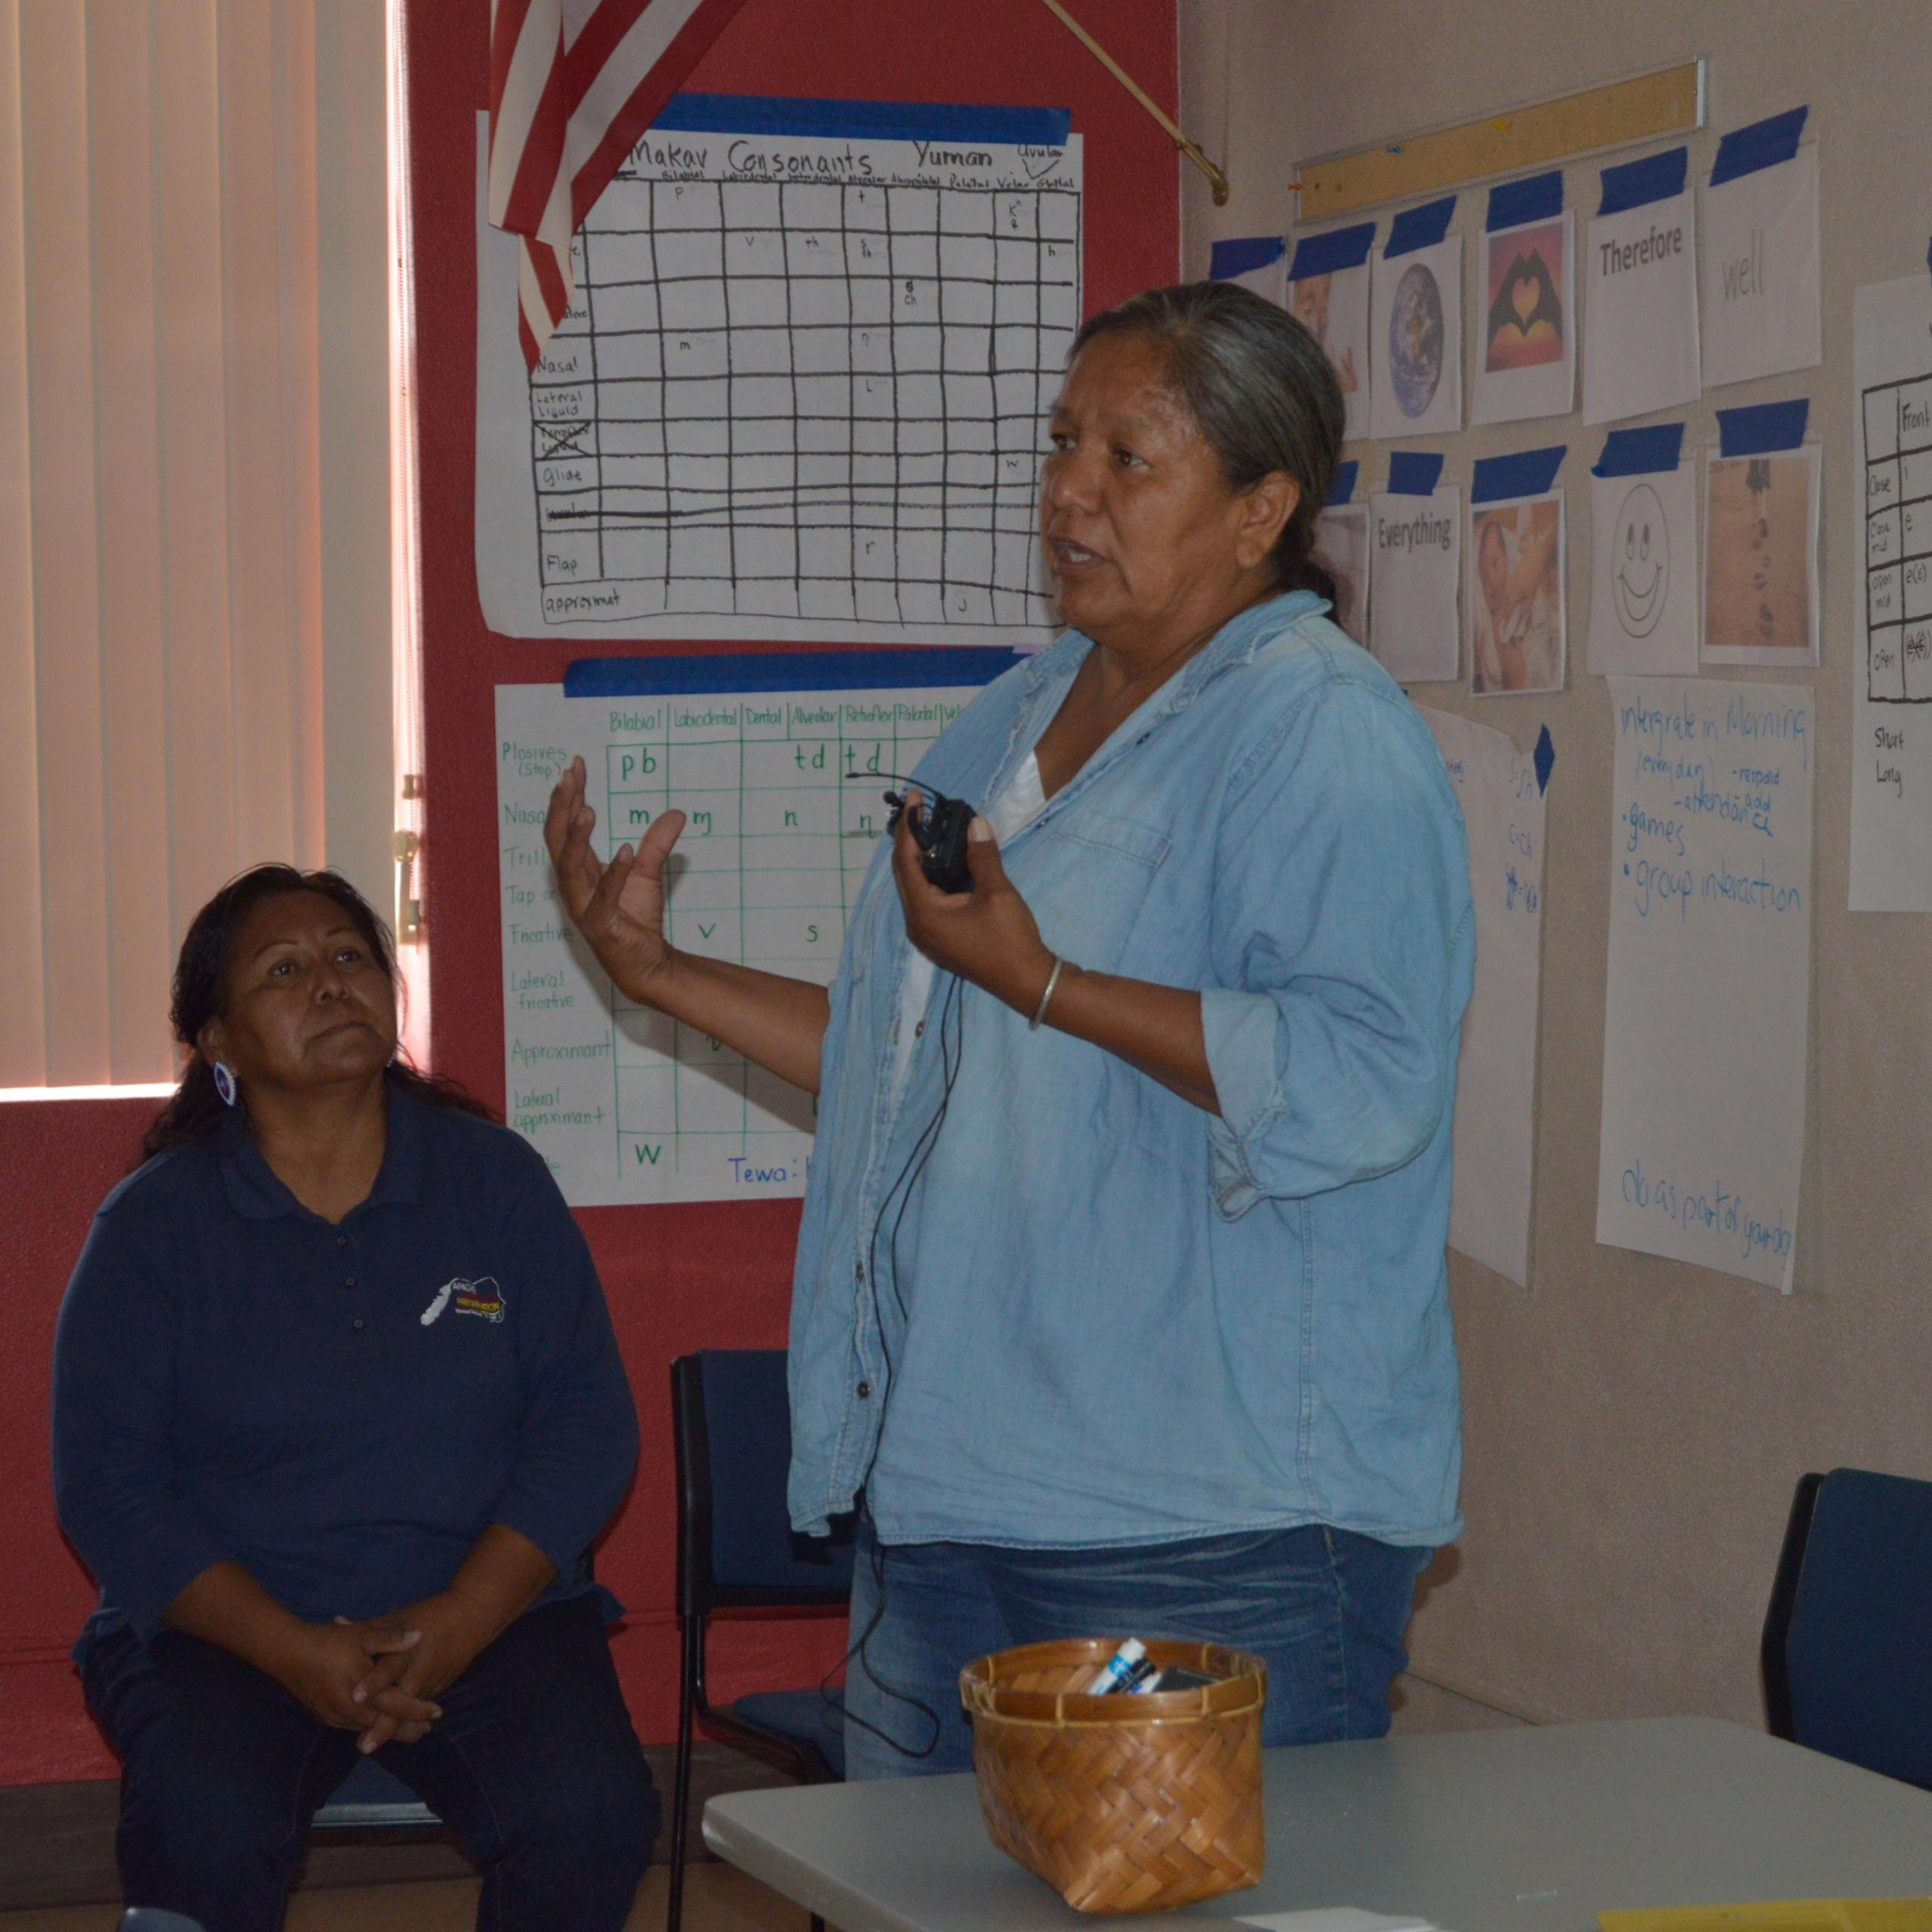 A photo of Cordella Moses and Twyla guest speaking and an AILDI summer session